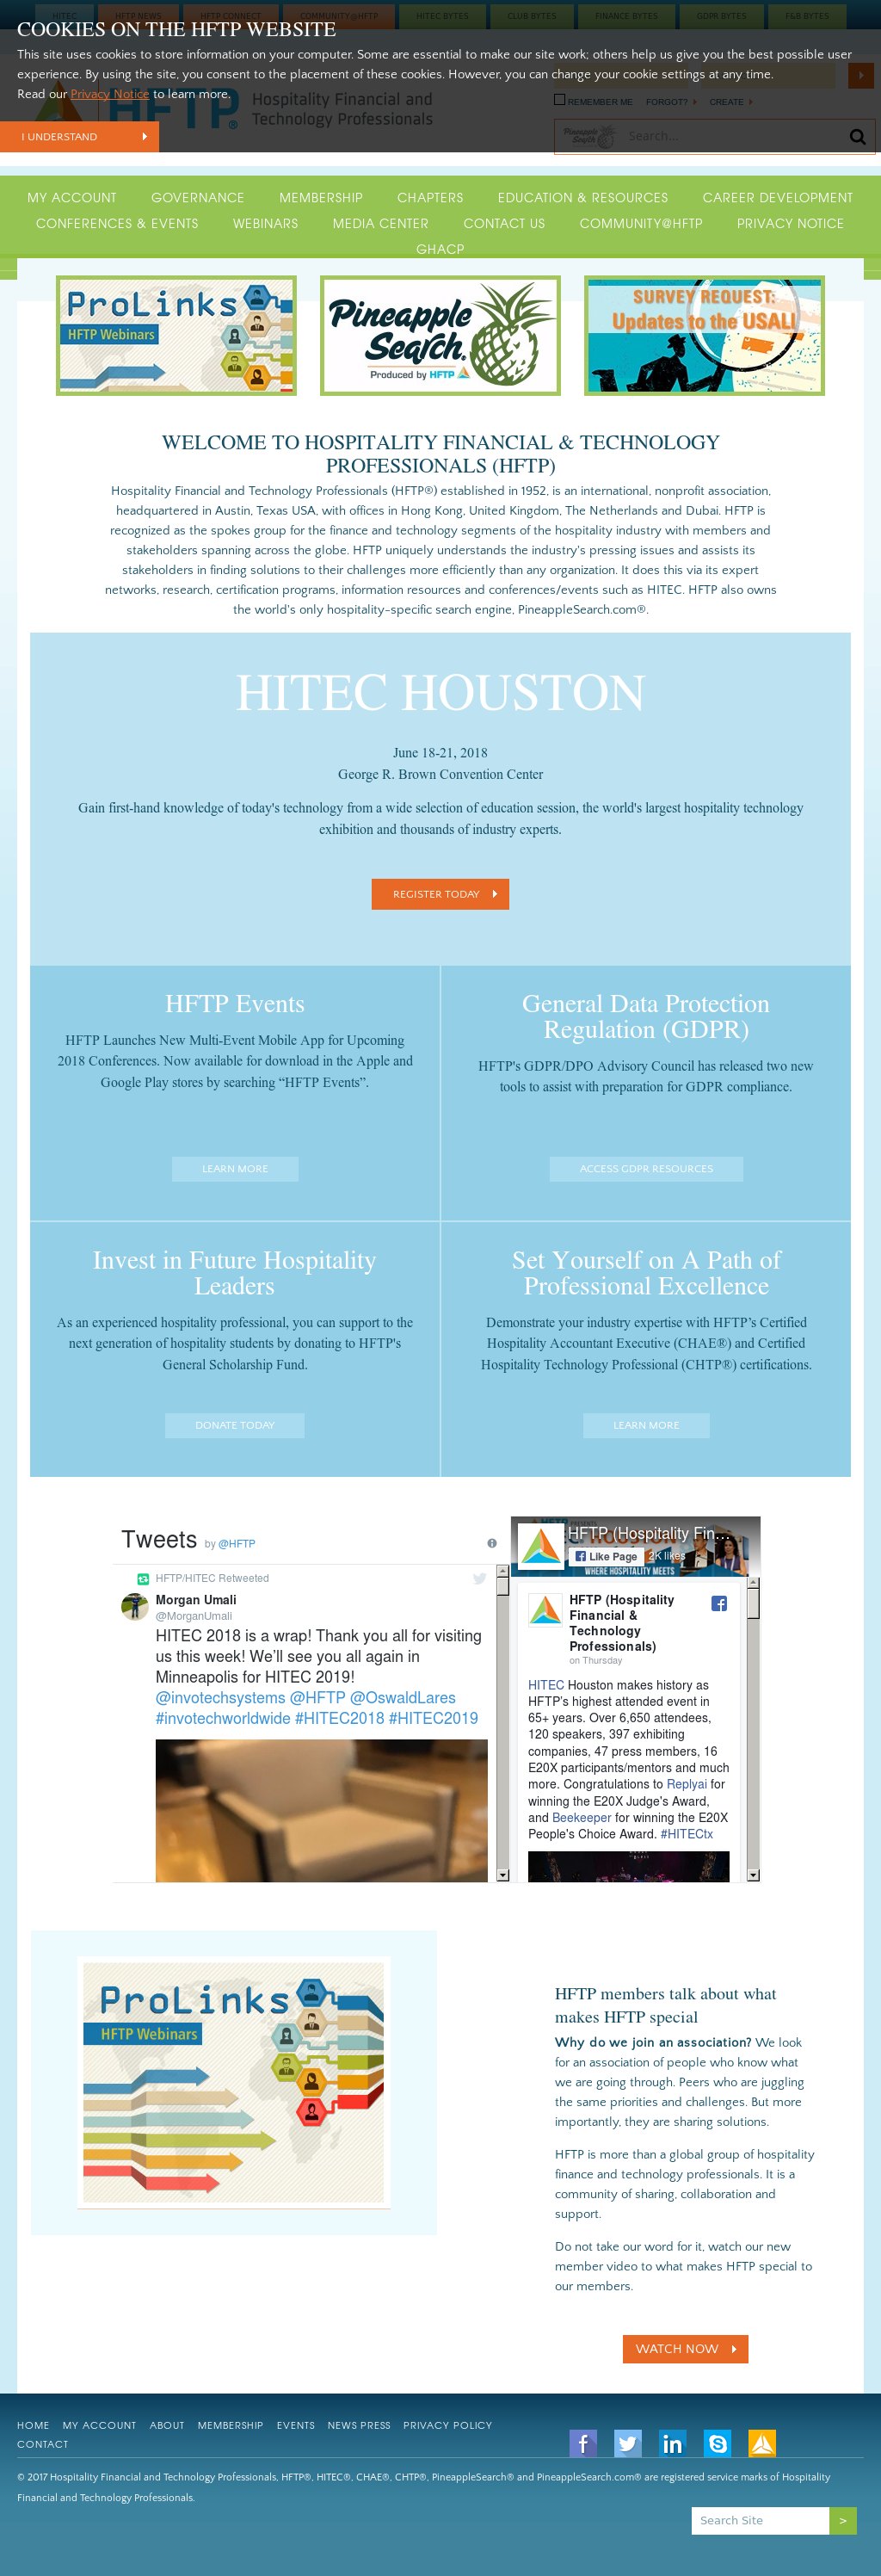 Hftp Competitors, Revenue and Employees - Owler Company Profile